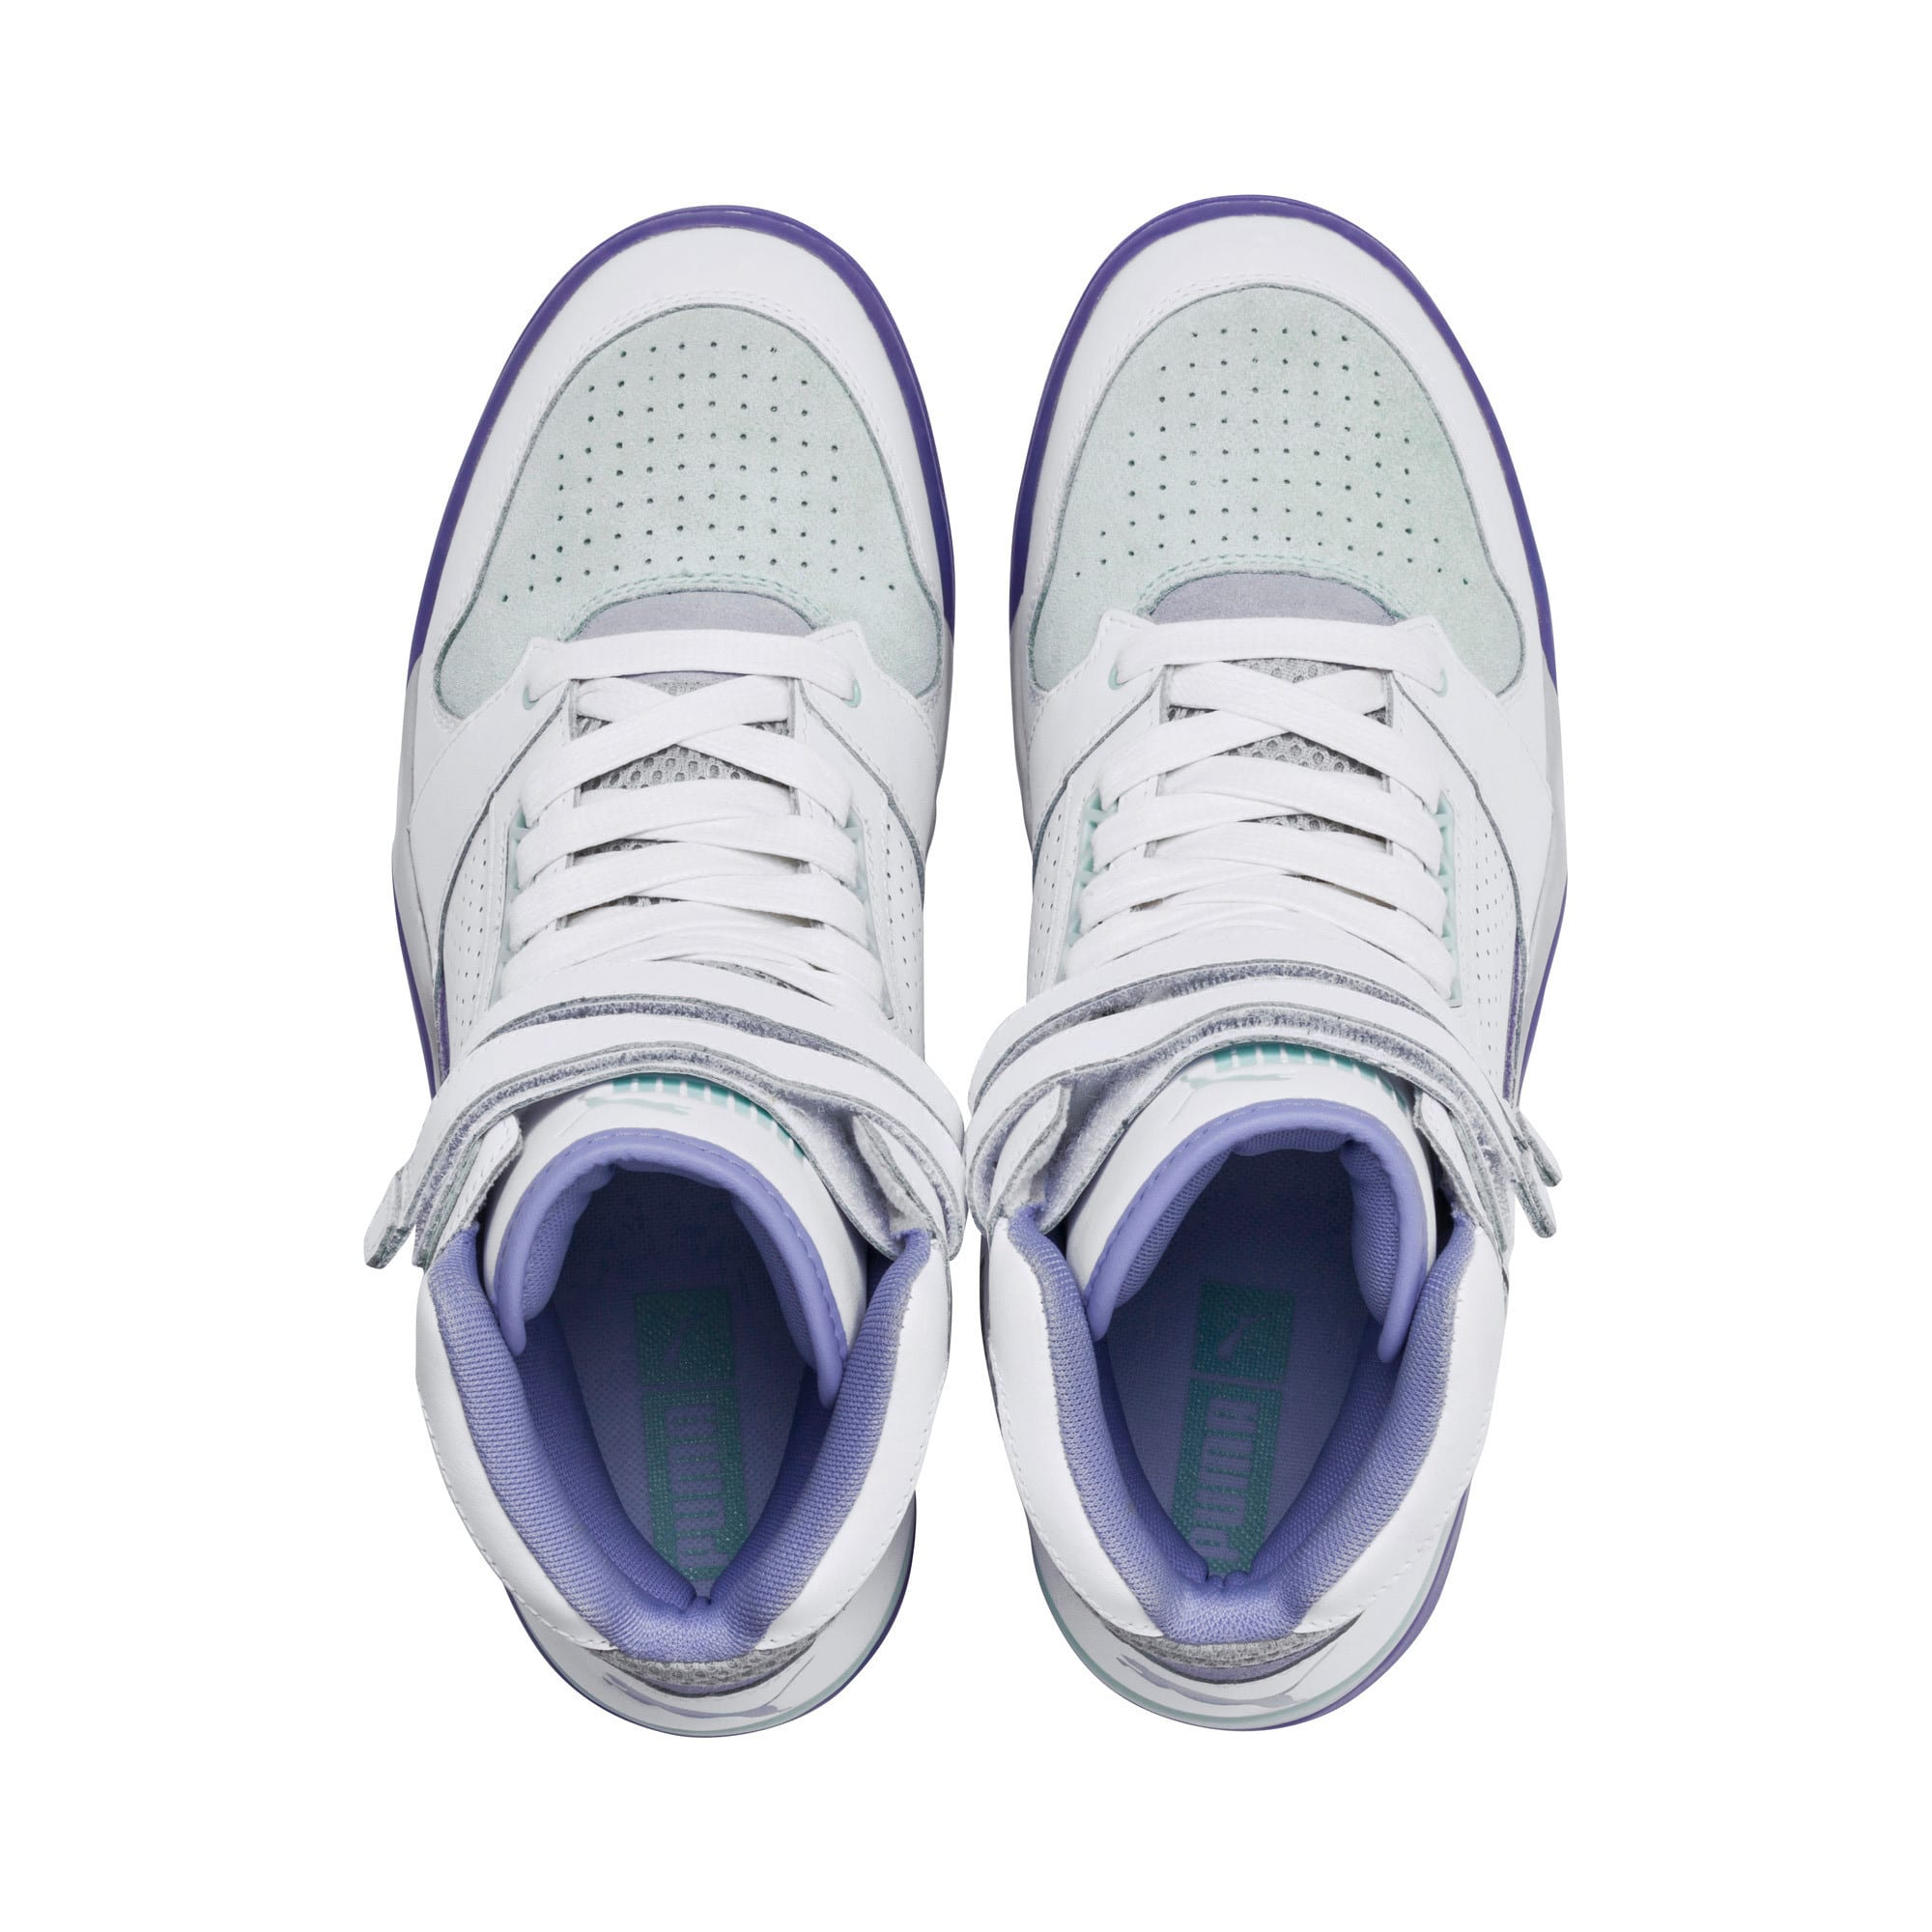 Thumbnail 6 of Palace Guard Mid Easter Sneakers, PWht-Dandelion-Prism Violet, medium